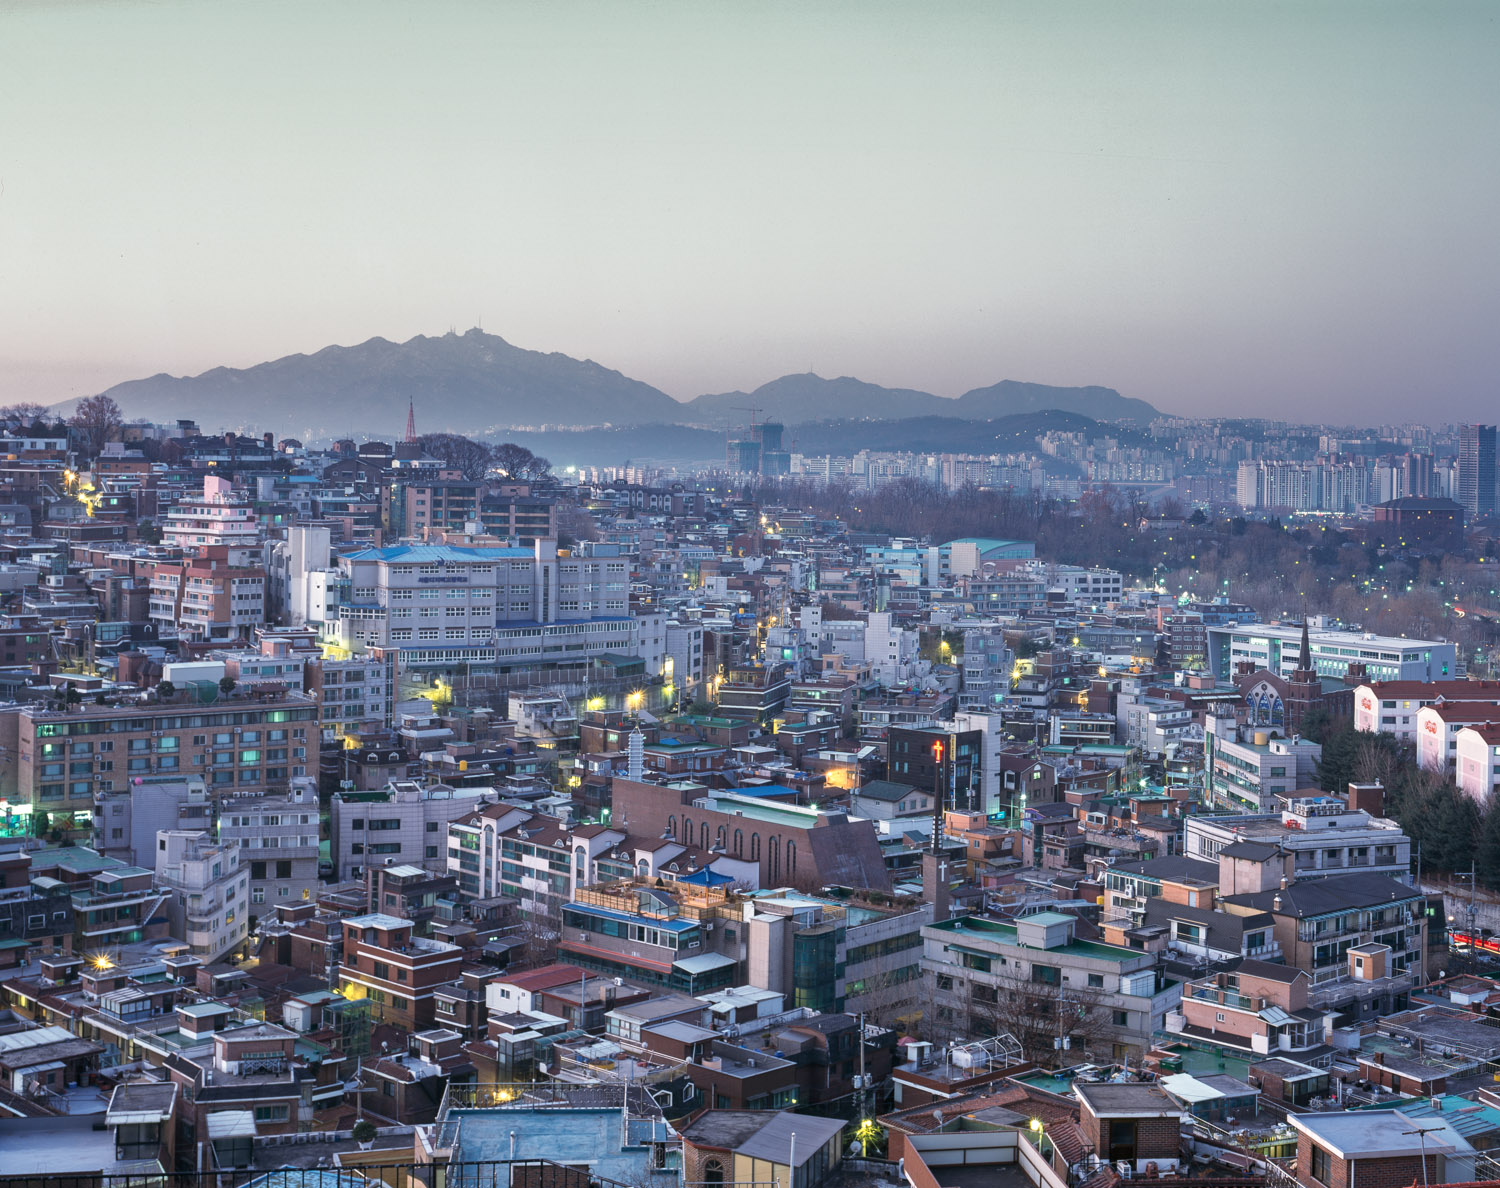 Itaewon at dawn